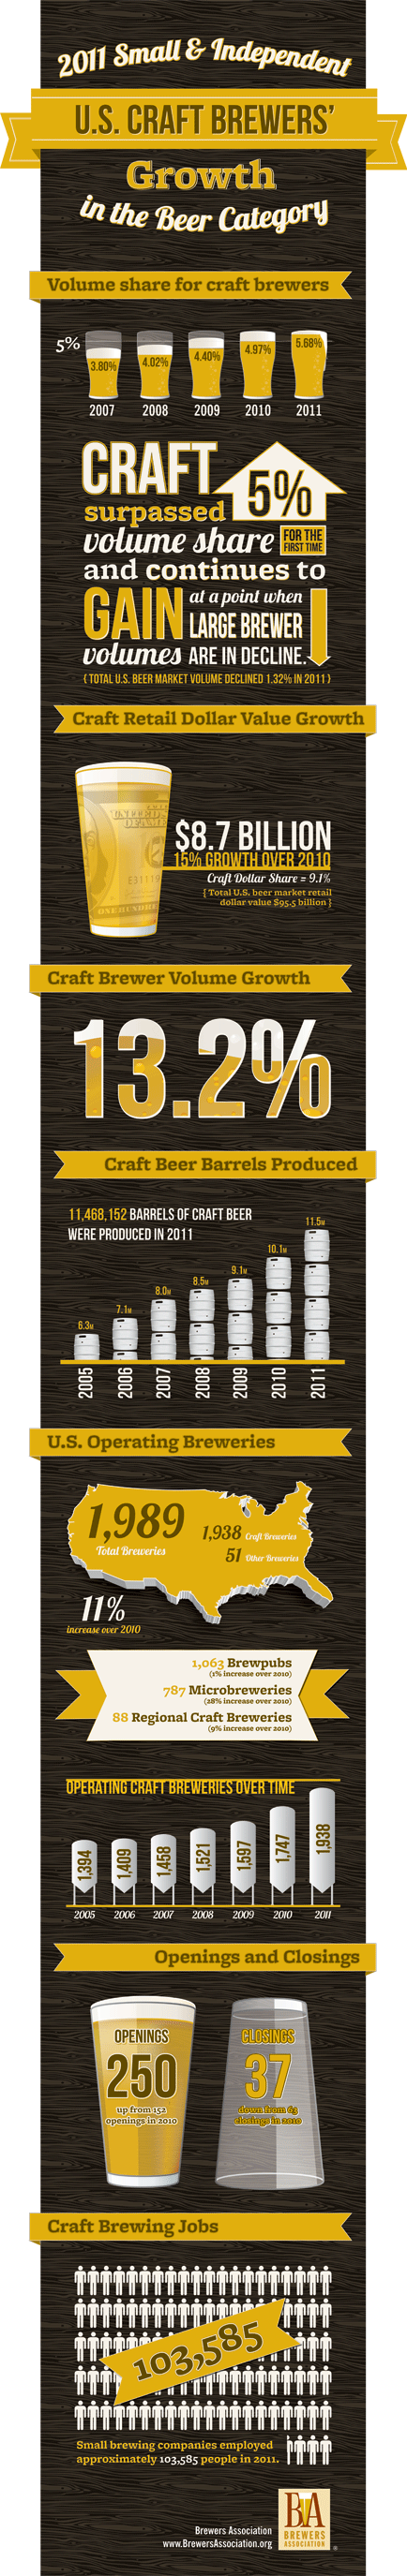 Pdxbeergeeks march 2012 for Craft beer industry statistics